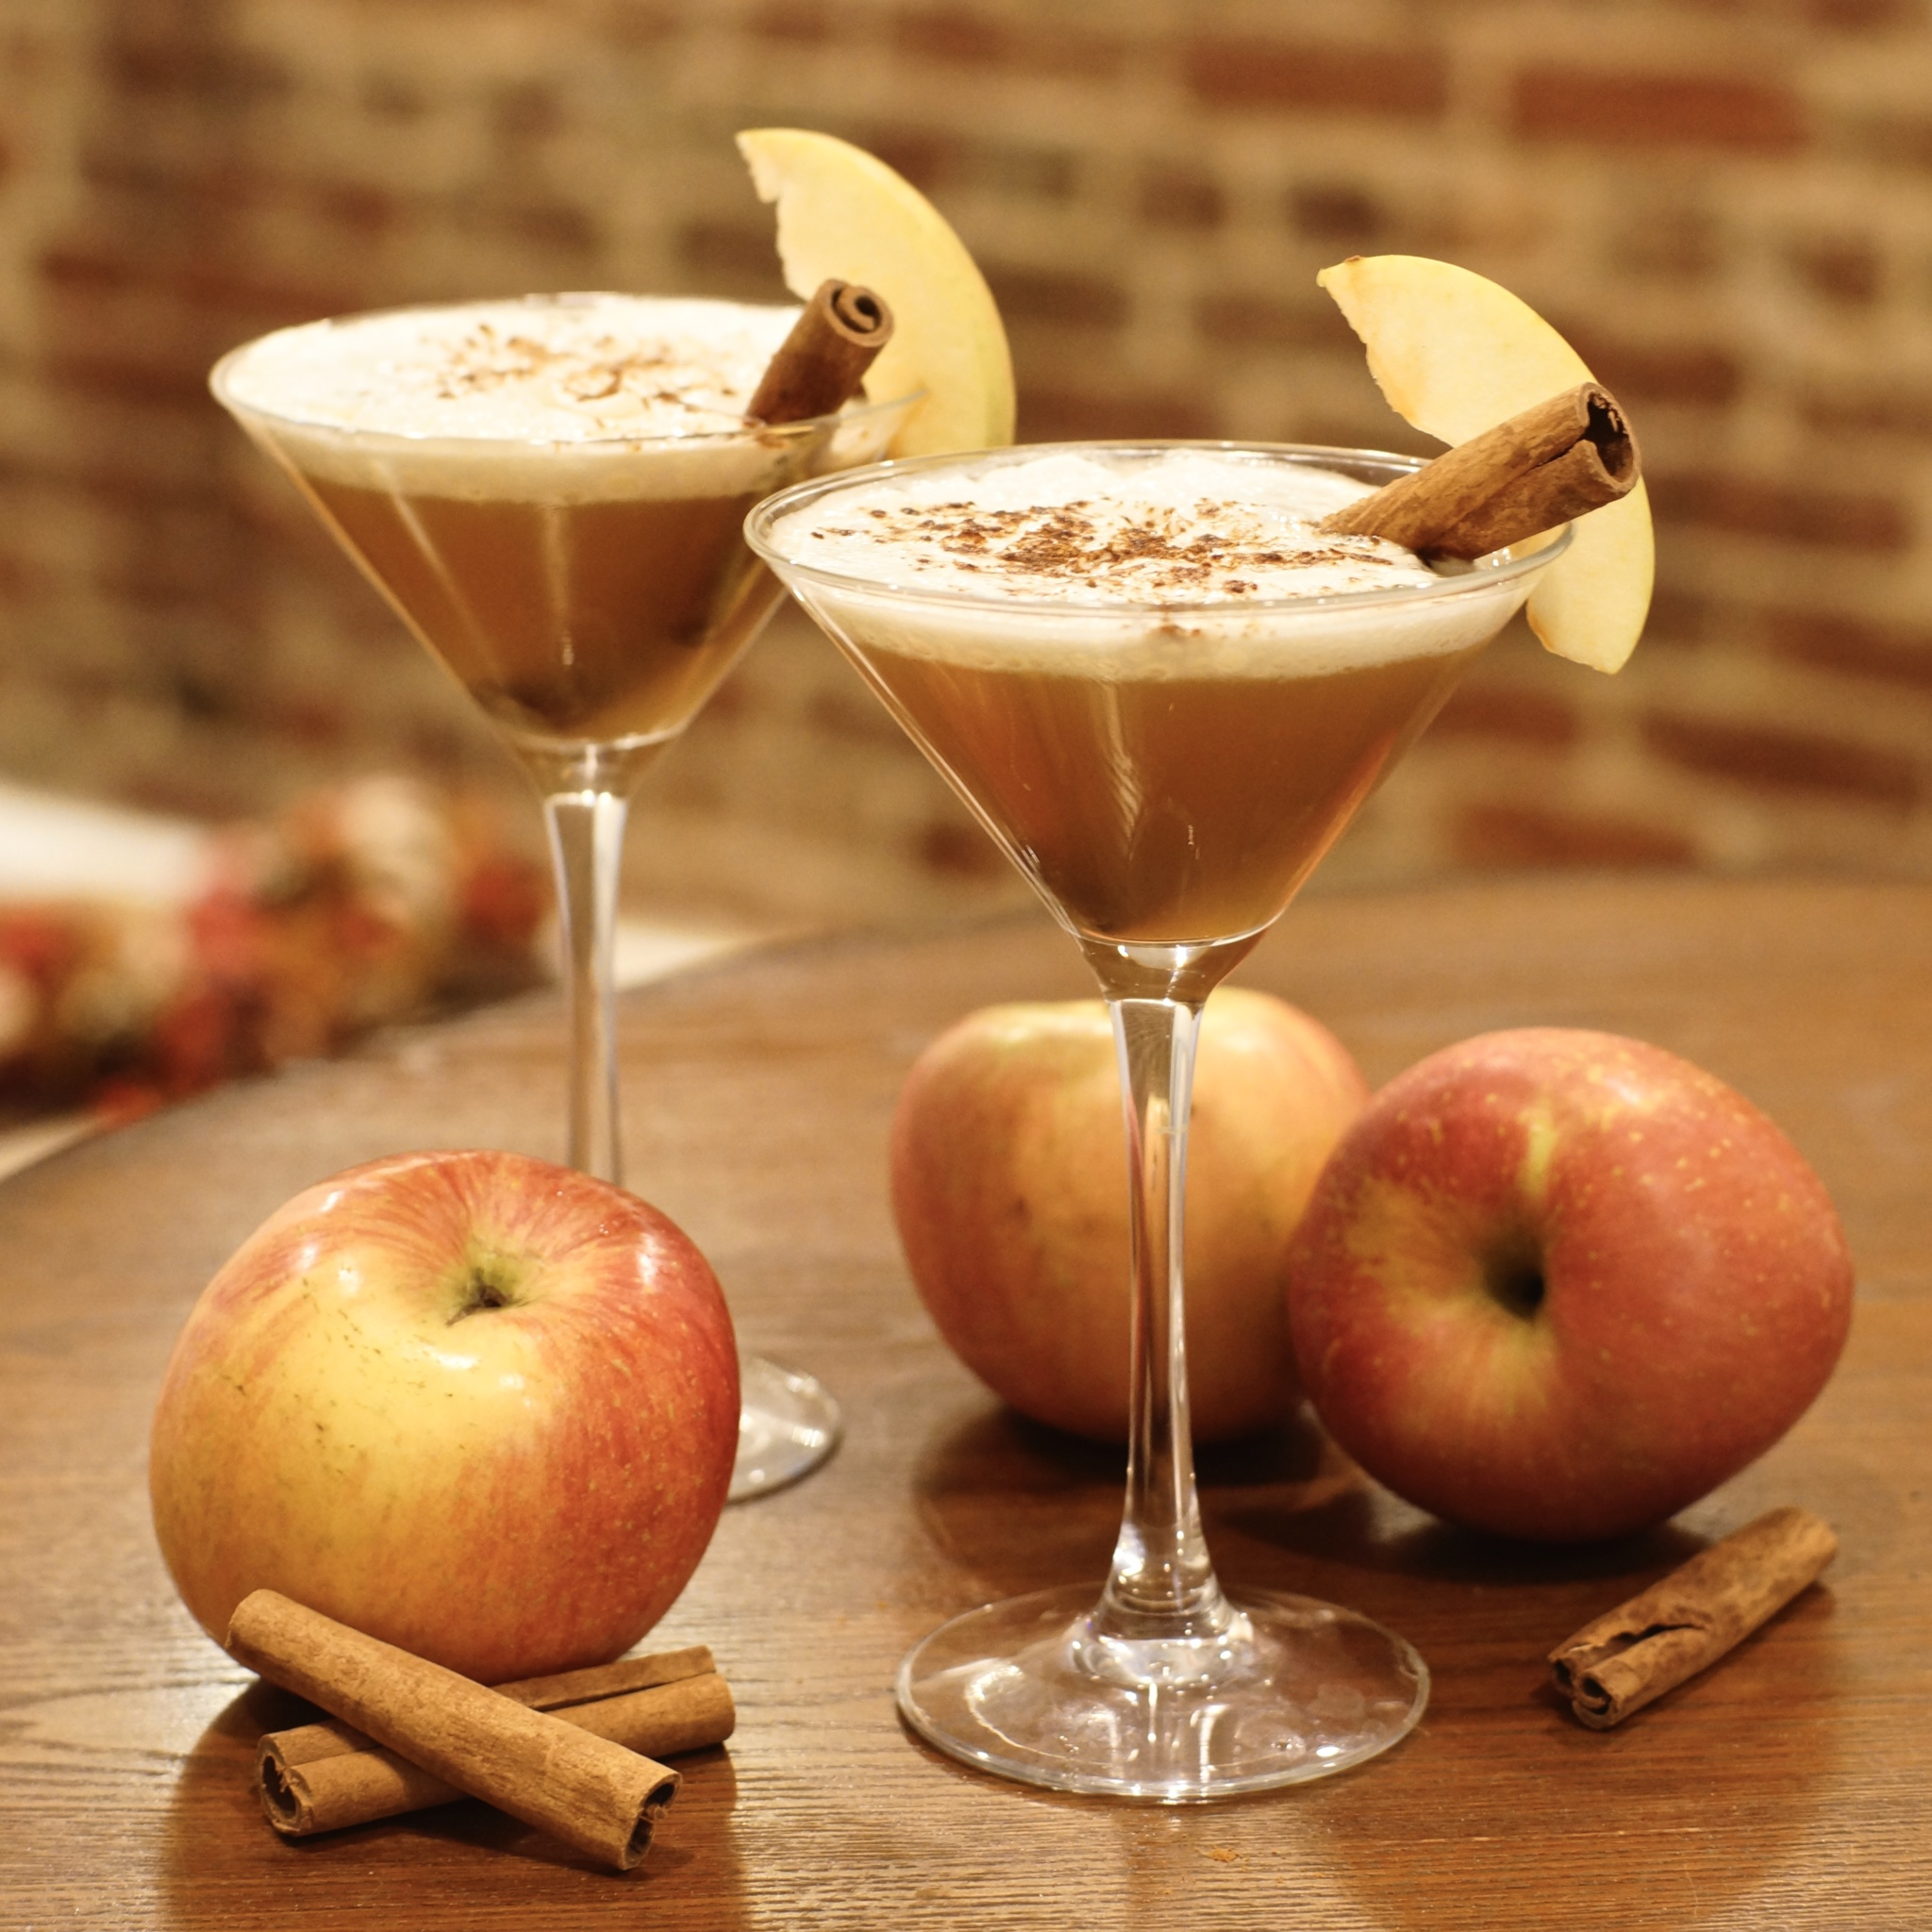 Apple Pie Cocktail: Warm Spiced Apple Cider with Rum